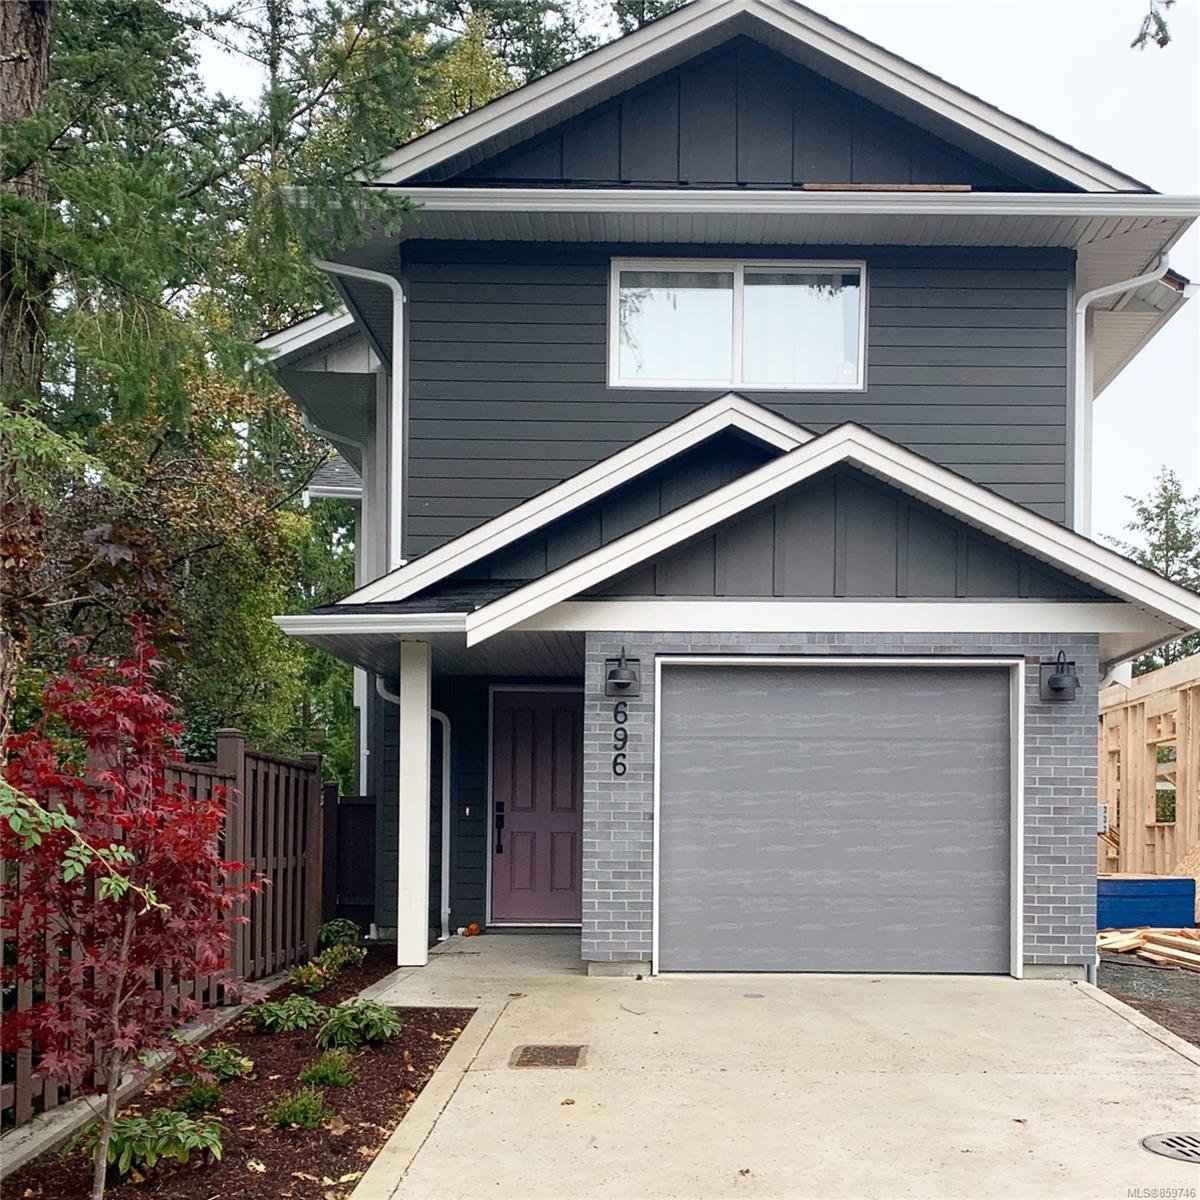 Sample photo of Lot 9 Barolo Place - exterior